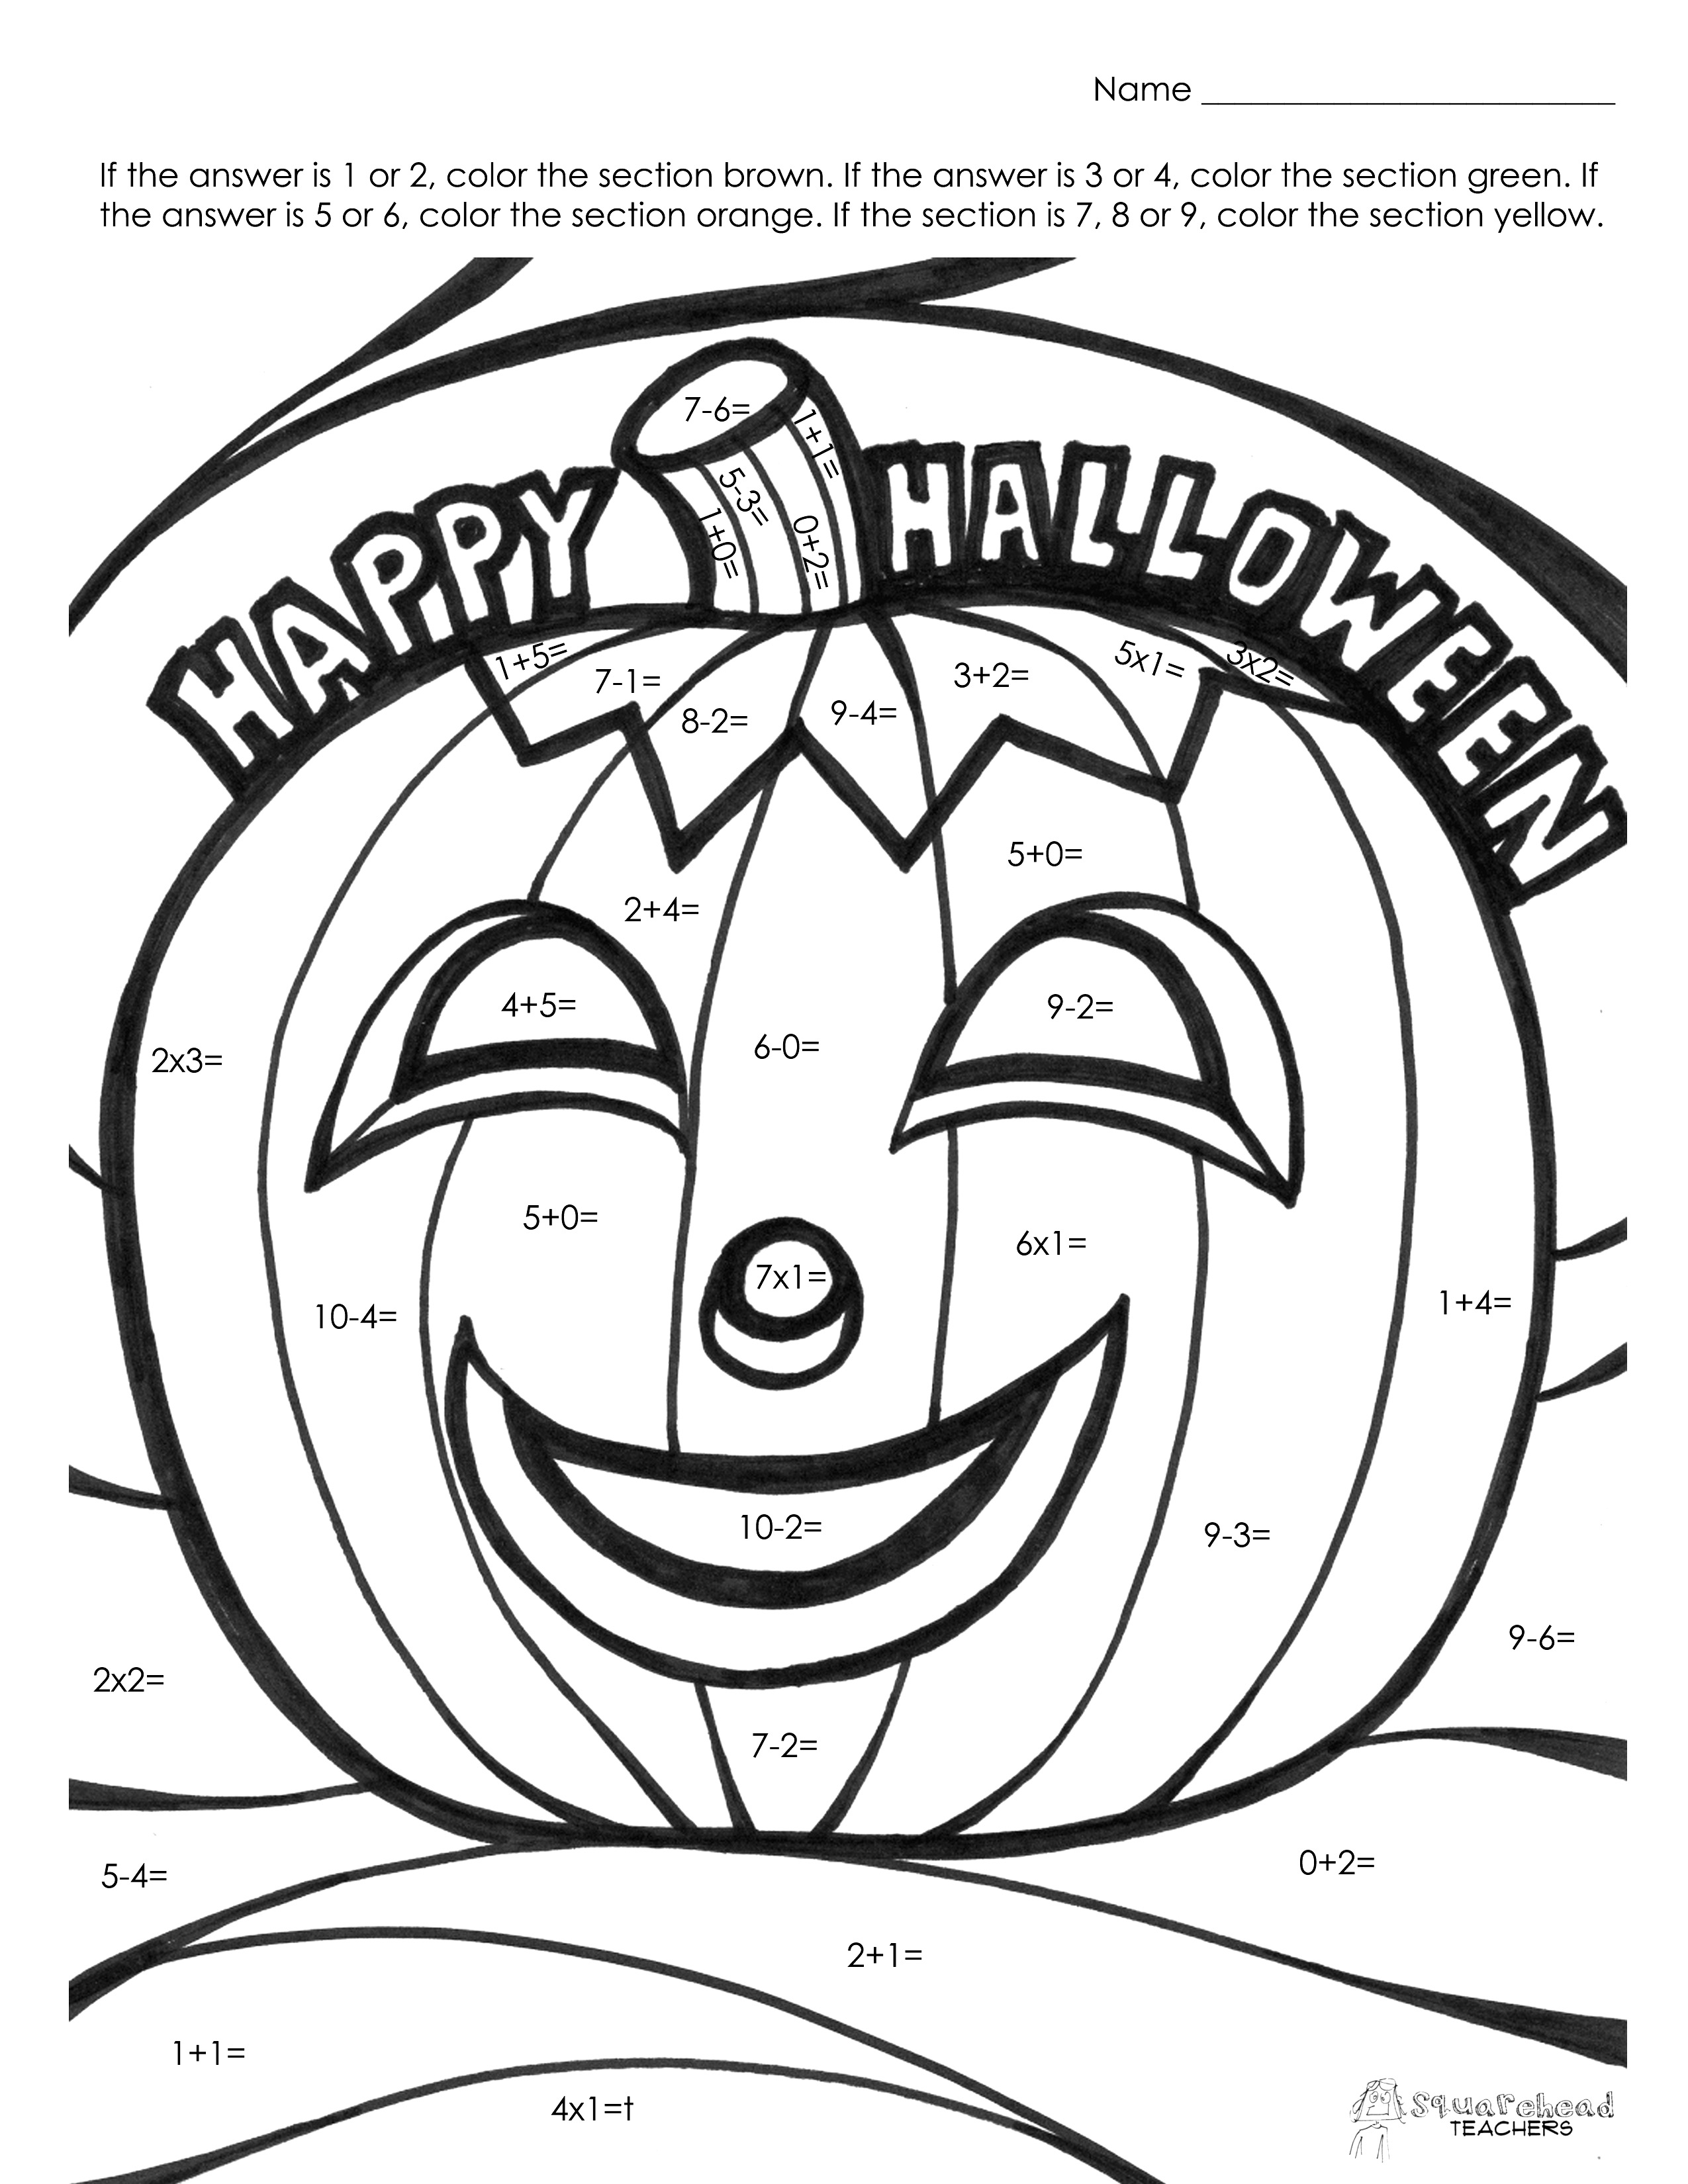 coloring pages for 3rd graders 3rd grade coloring pages free download on clipartmag coloring pages for 3rd graders